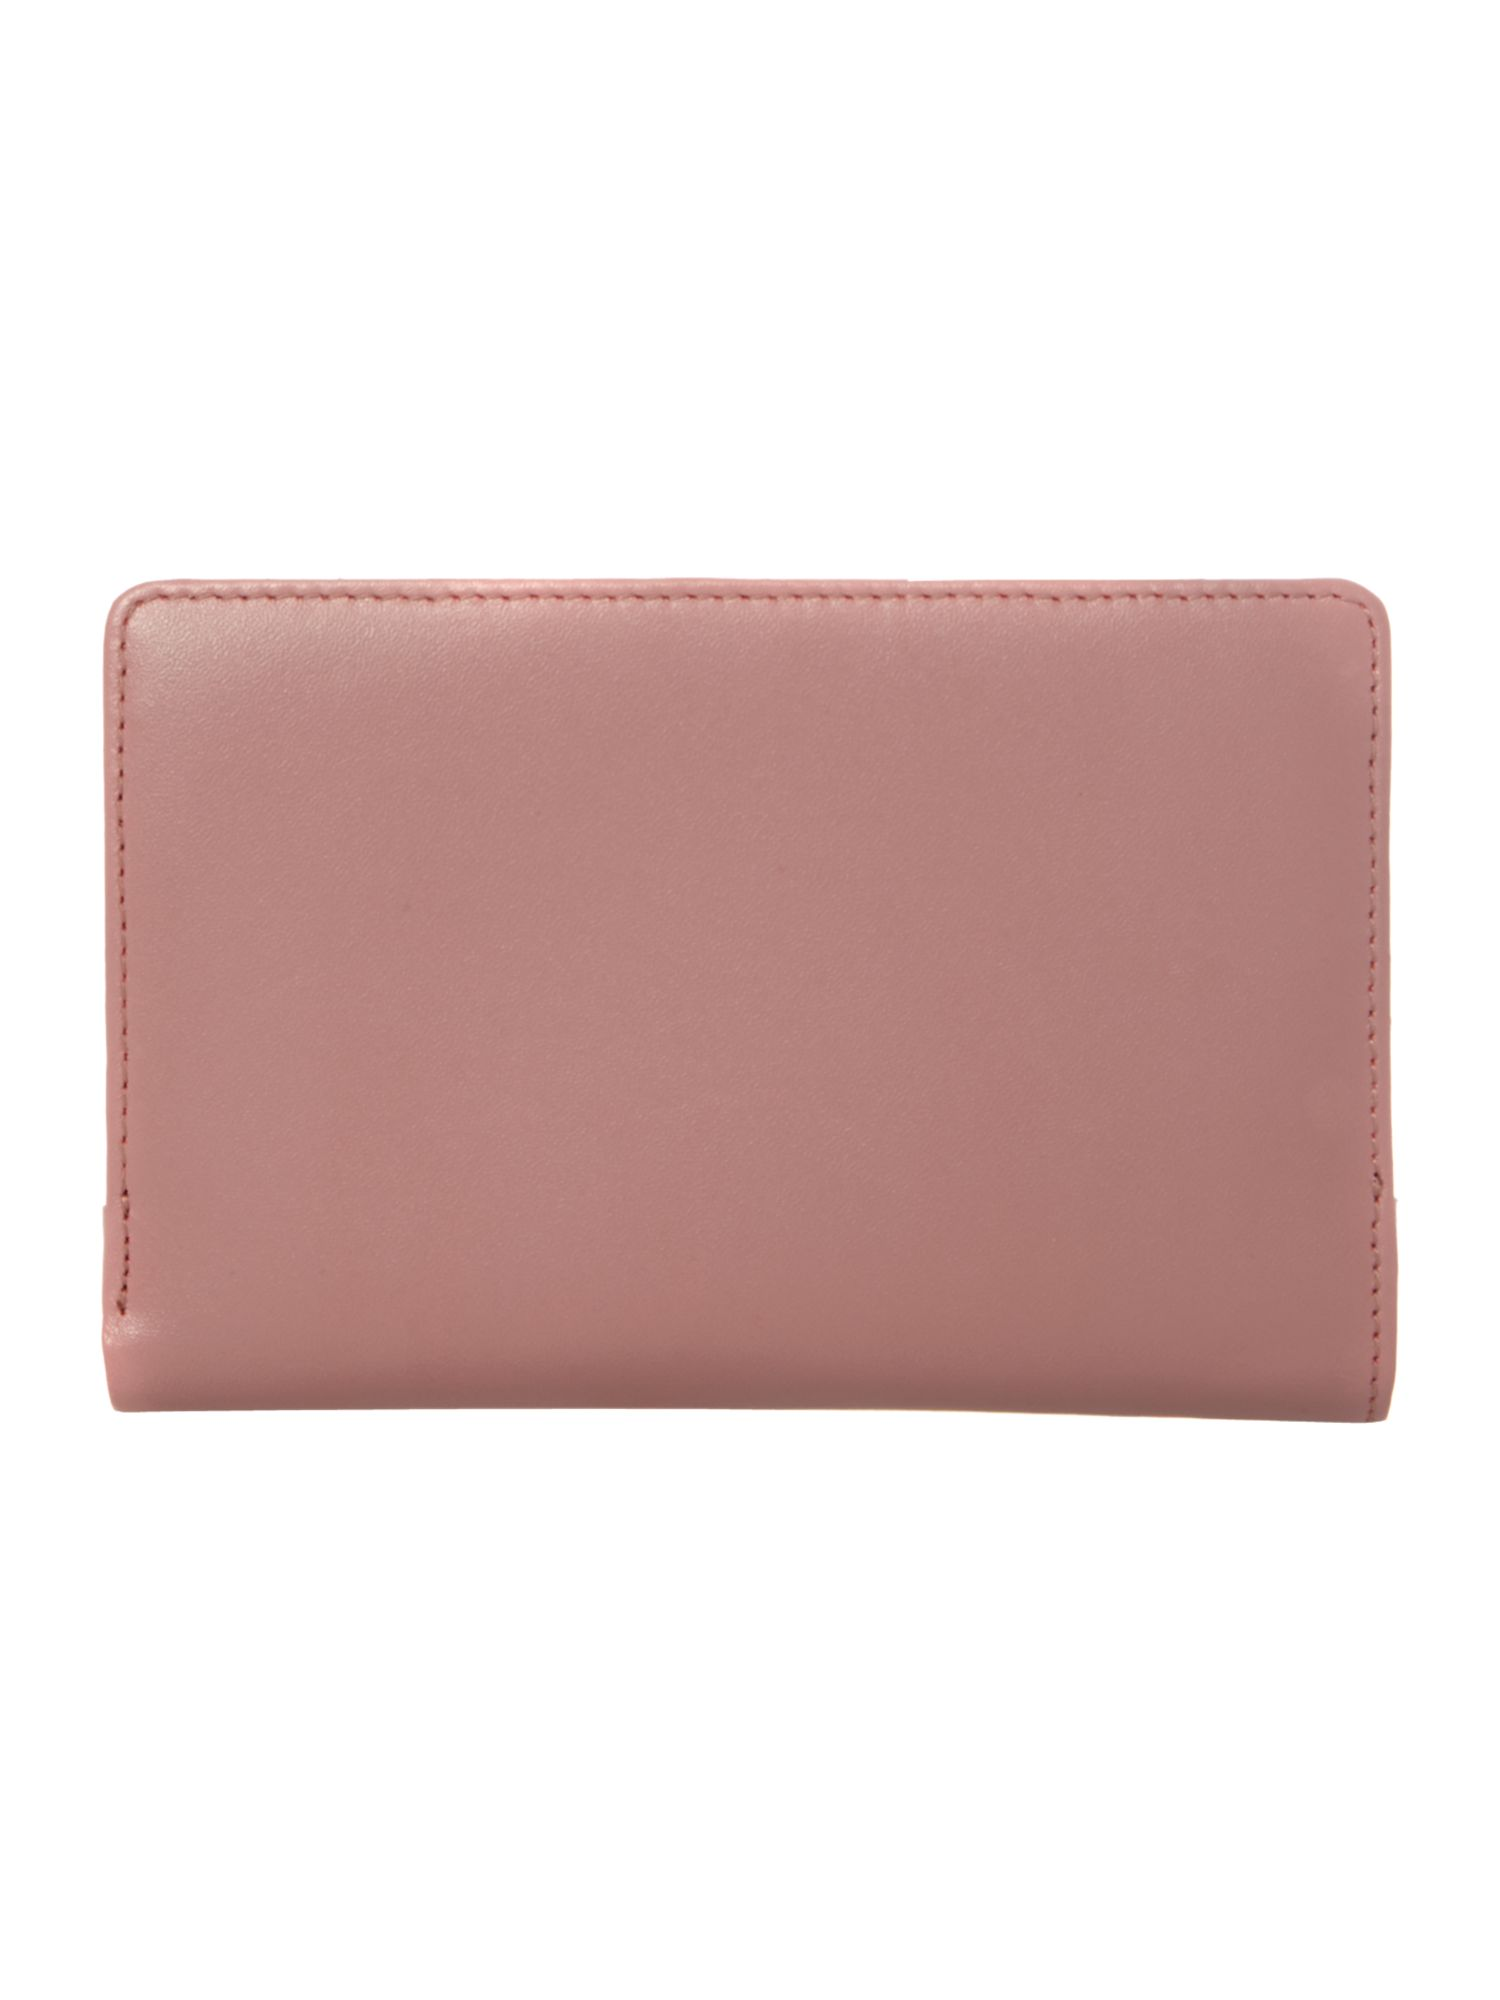 Radley express pink medium zip around purse